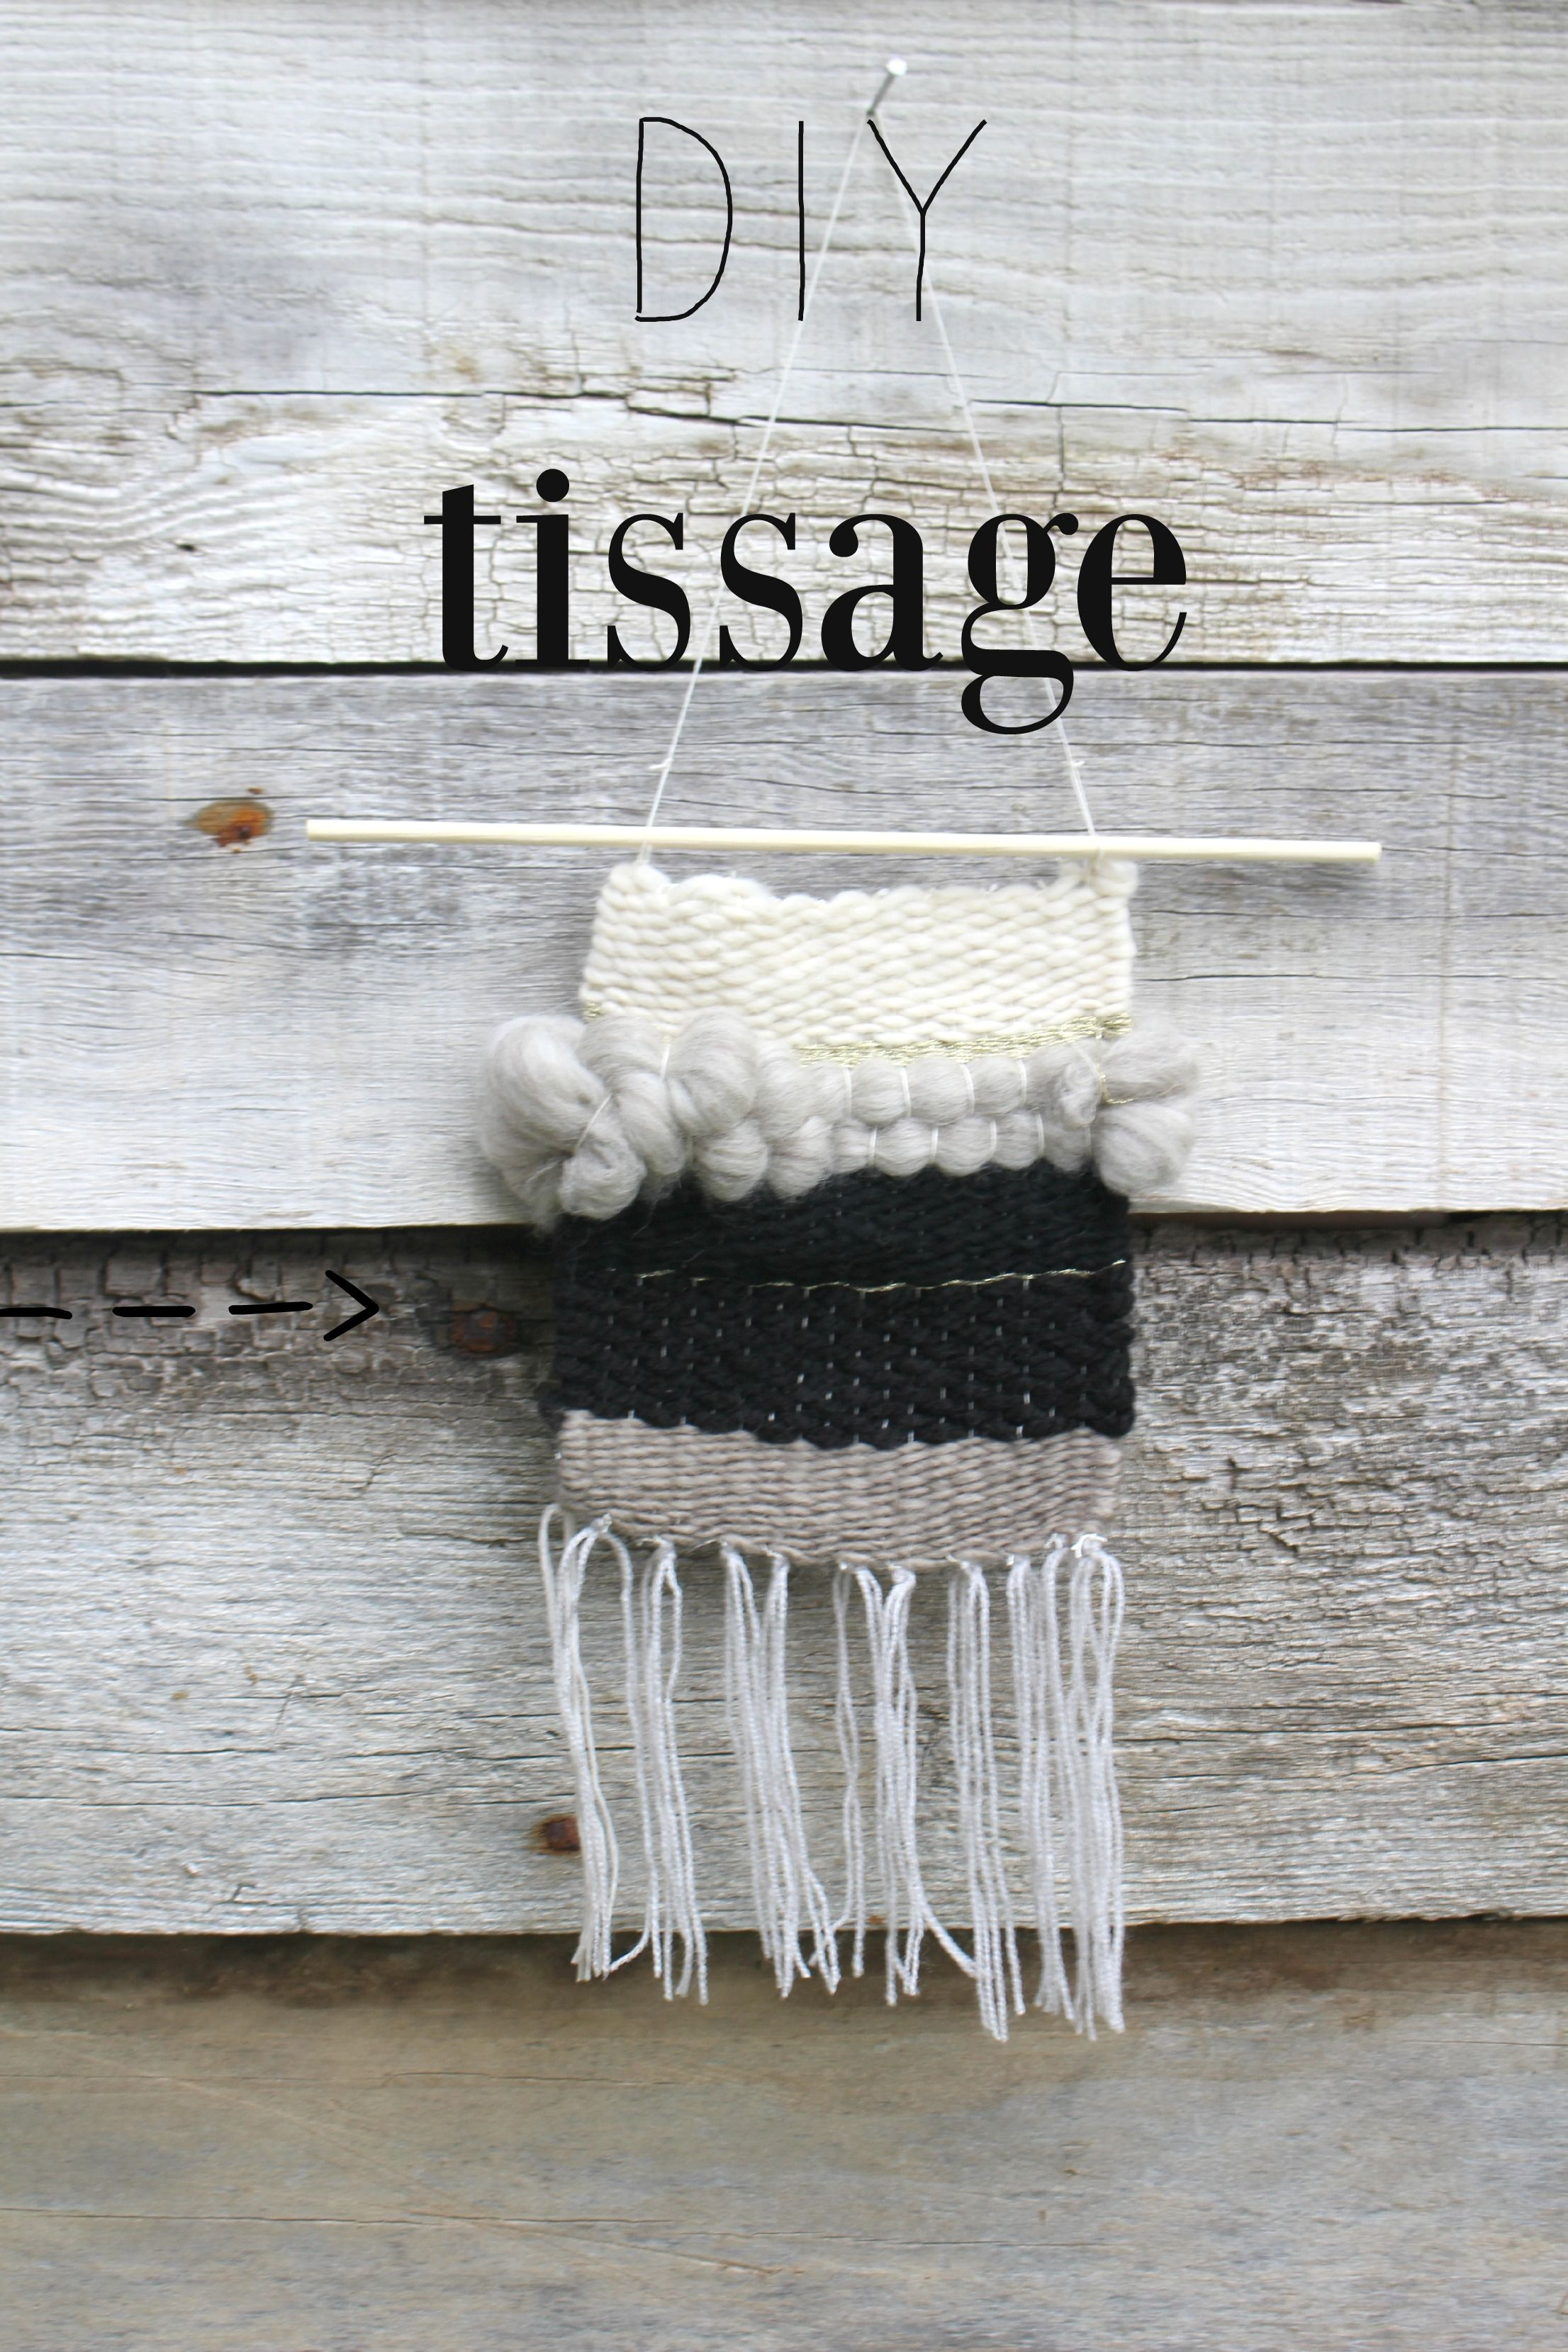 apprendre  u00e0 tisser  diy tissage by woodhappen